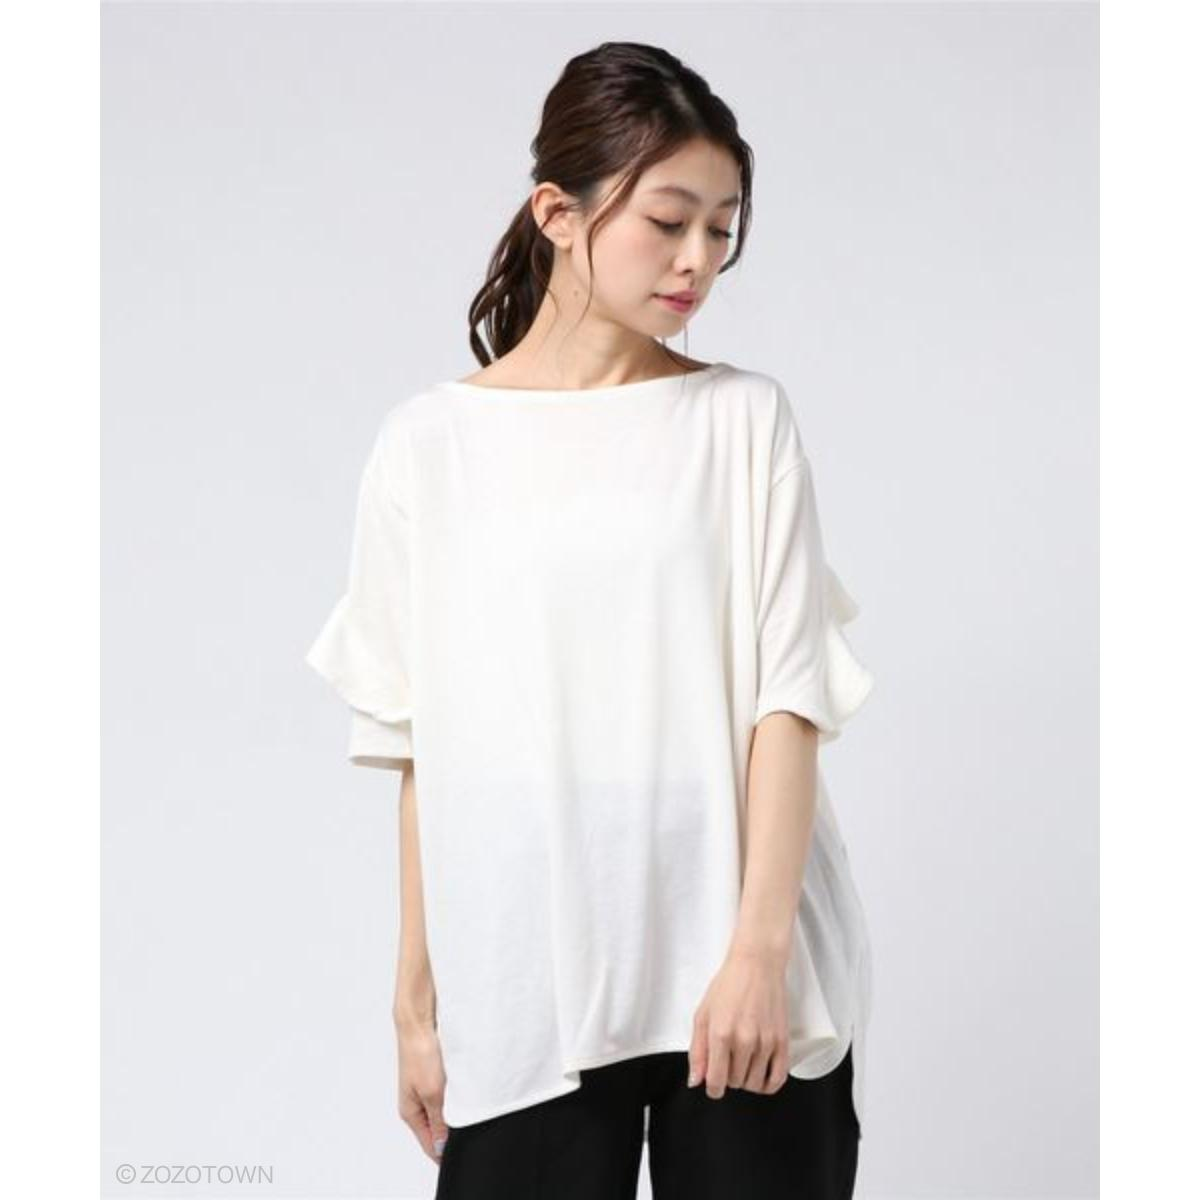 【Bou Jeloud】 Tシャツ/カットソー